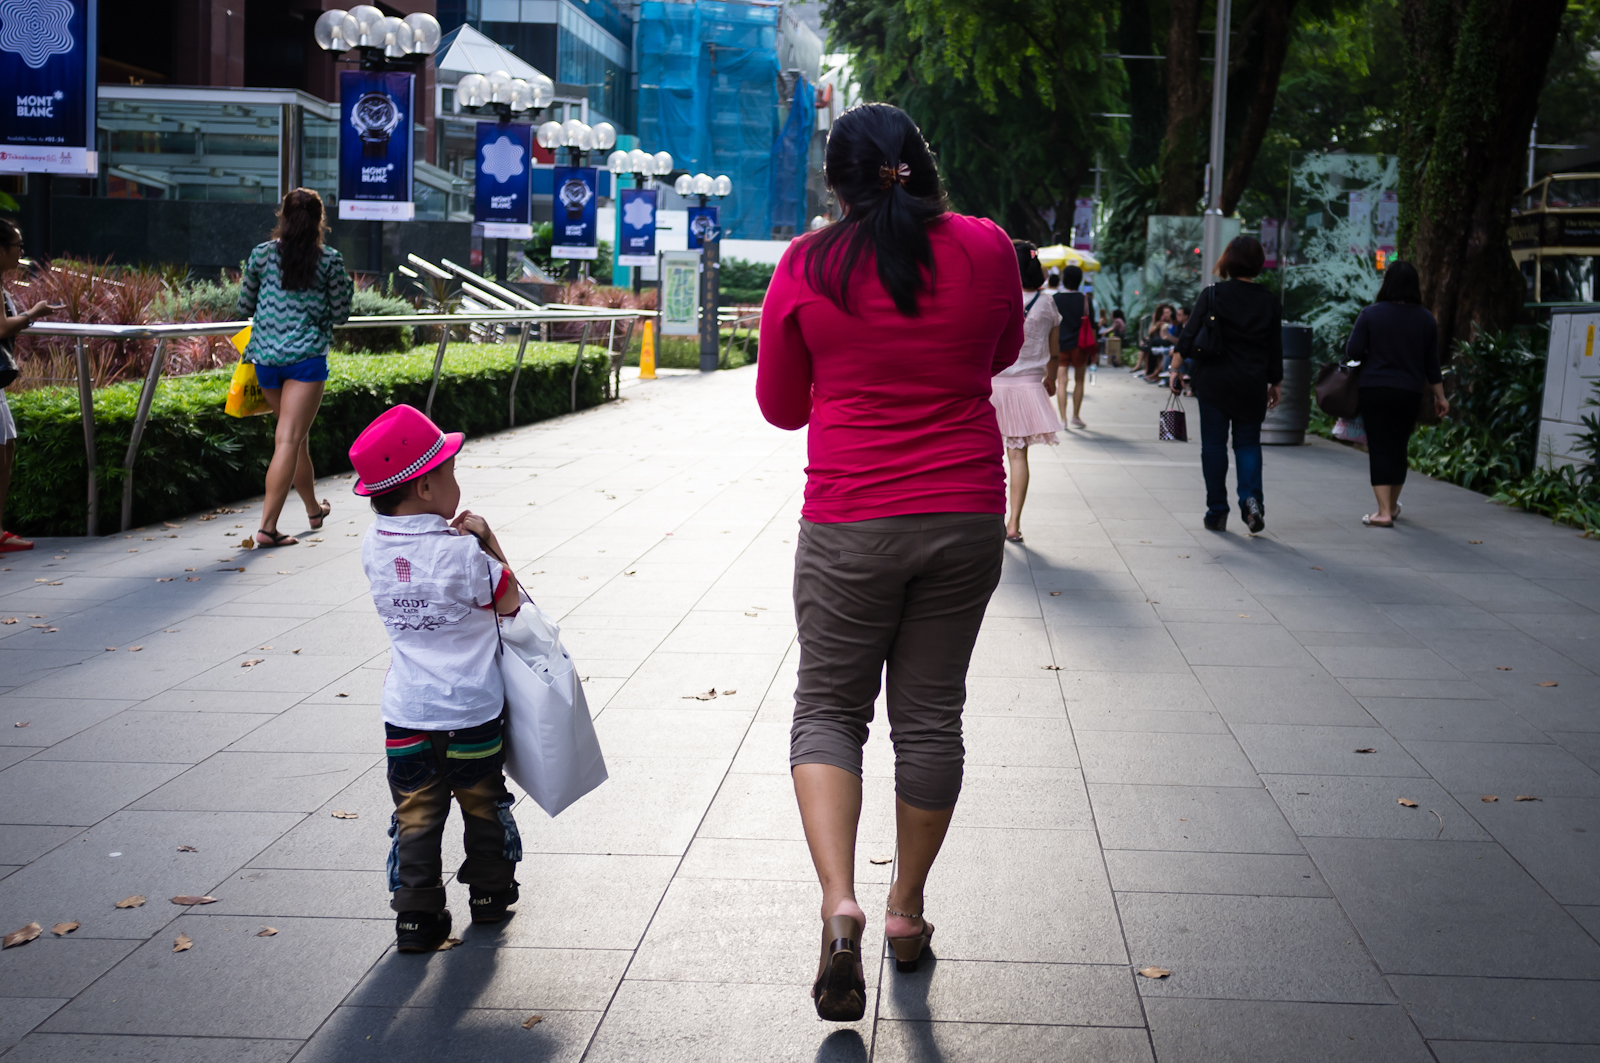 Street photography - Boy carrying shopping bag for his mother